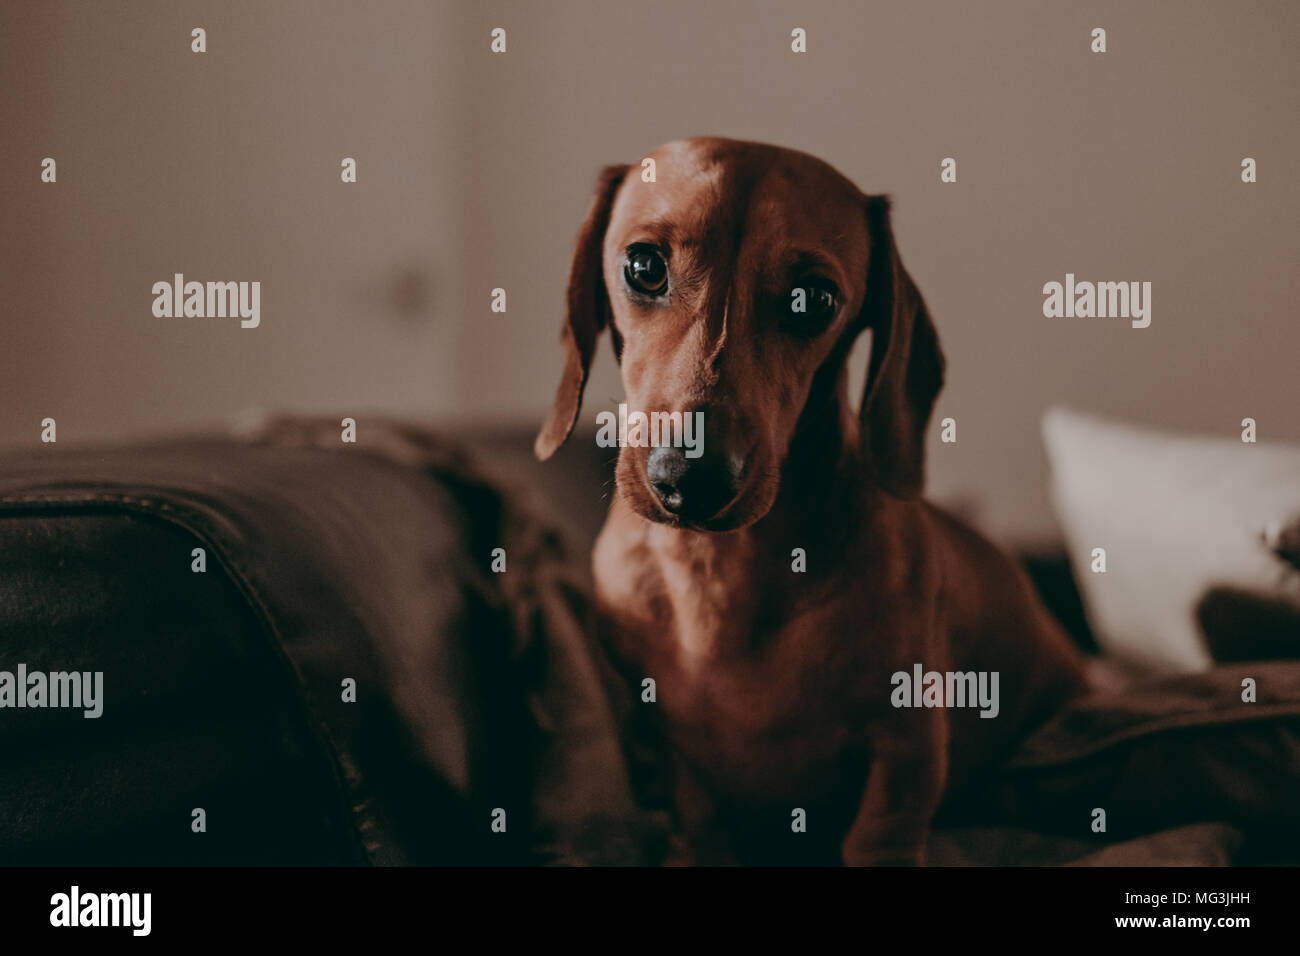 One-year-old smooth brown dachshund dog standing on a sofa inside an apartment, looking in the camera, in the evening, moody lighting. Stock Photo